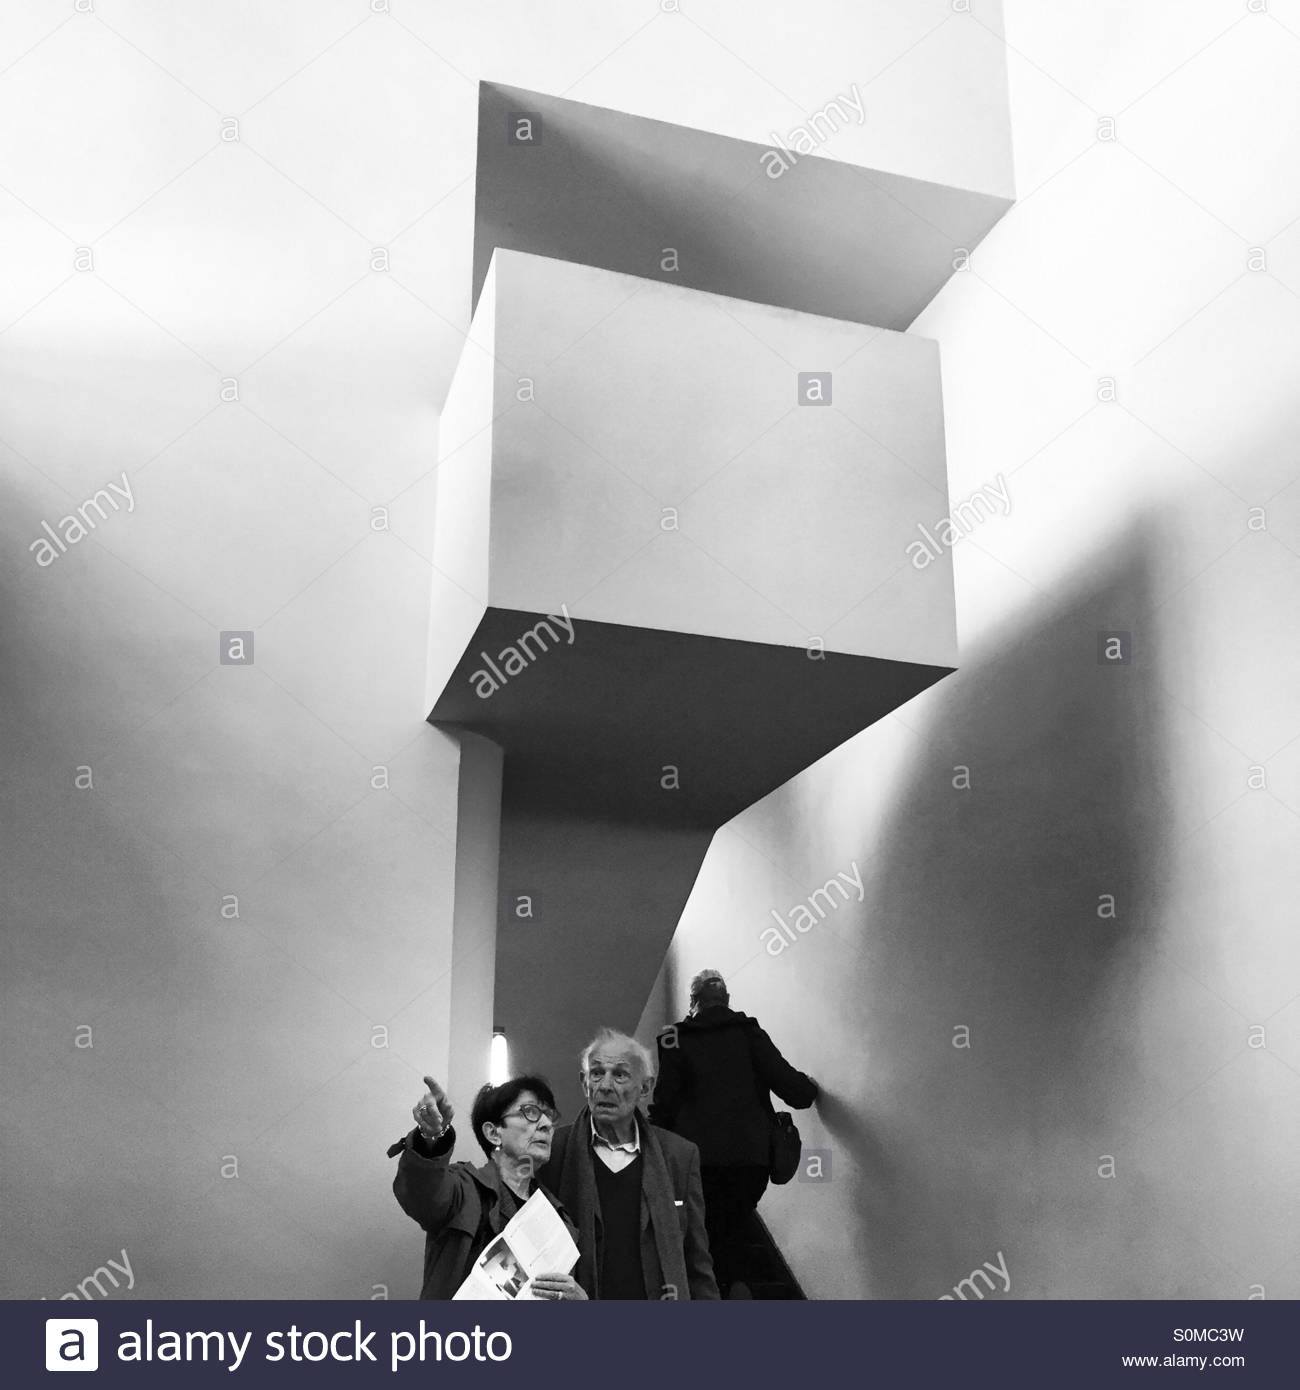 Visitors contemplating the architecture of Le Corbusier in Maison La Roche. - Stock Image